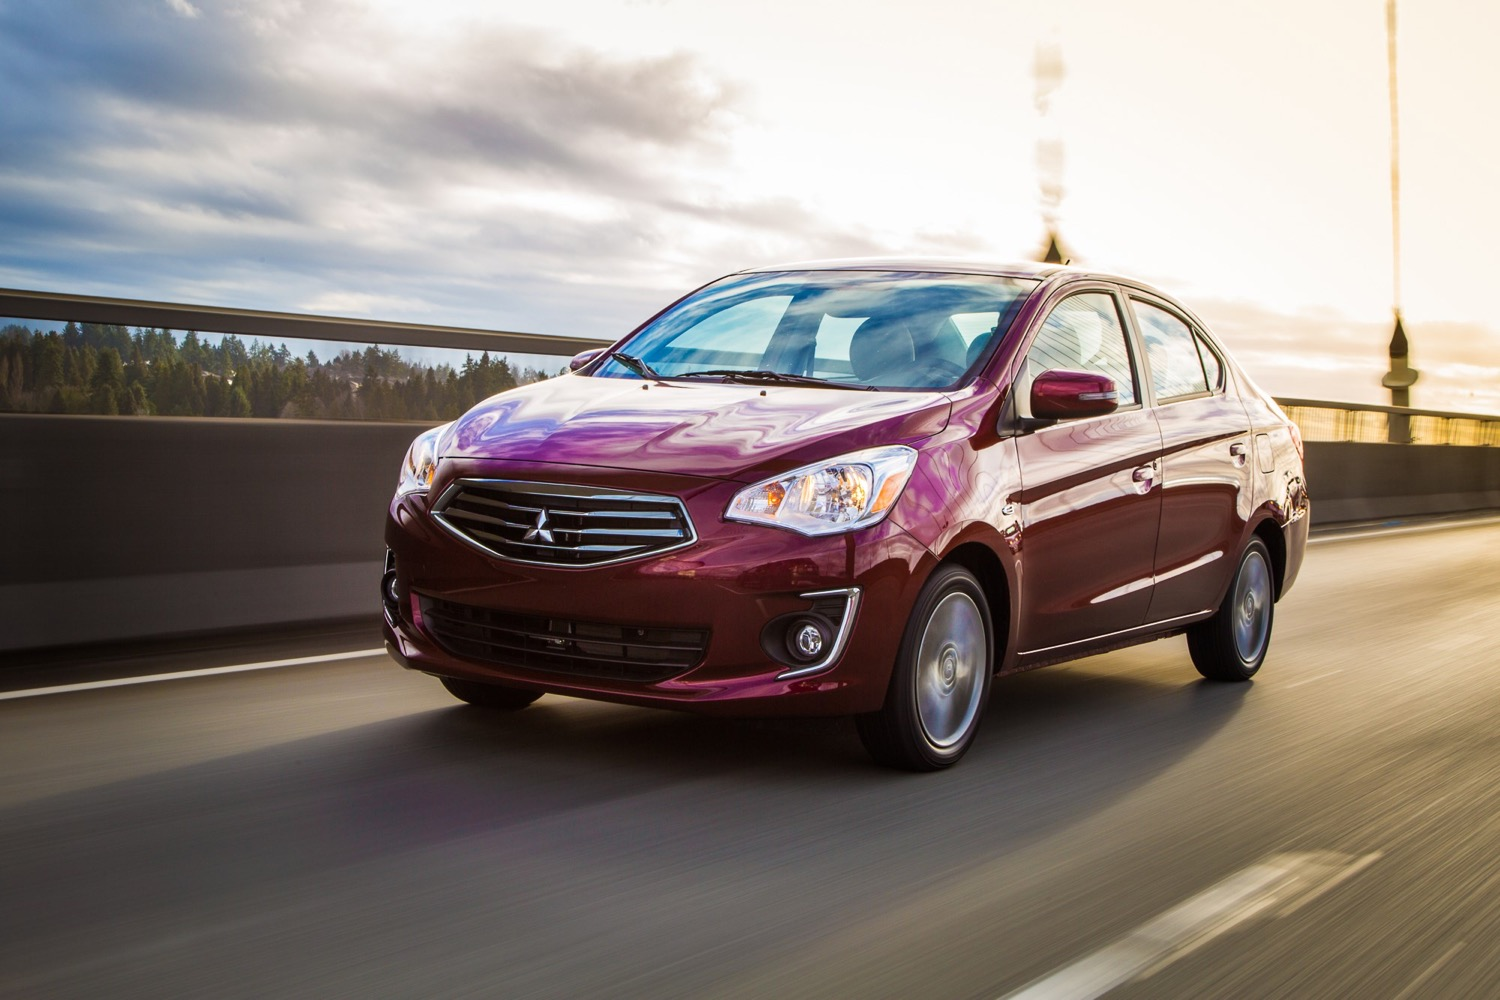 Mitsubishi Mirage Sedan Unveiled At Toronto Auto Show